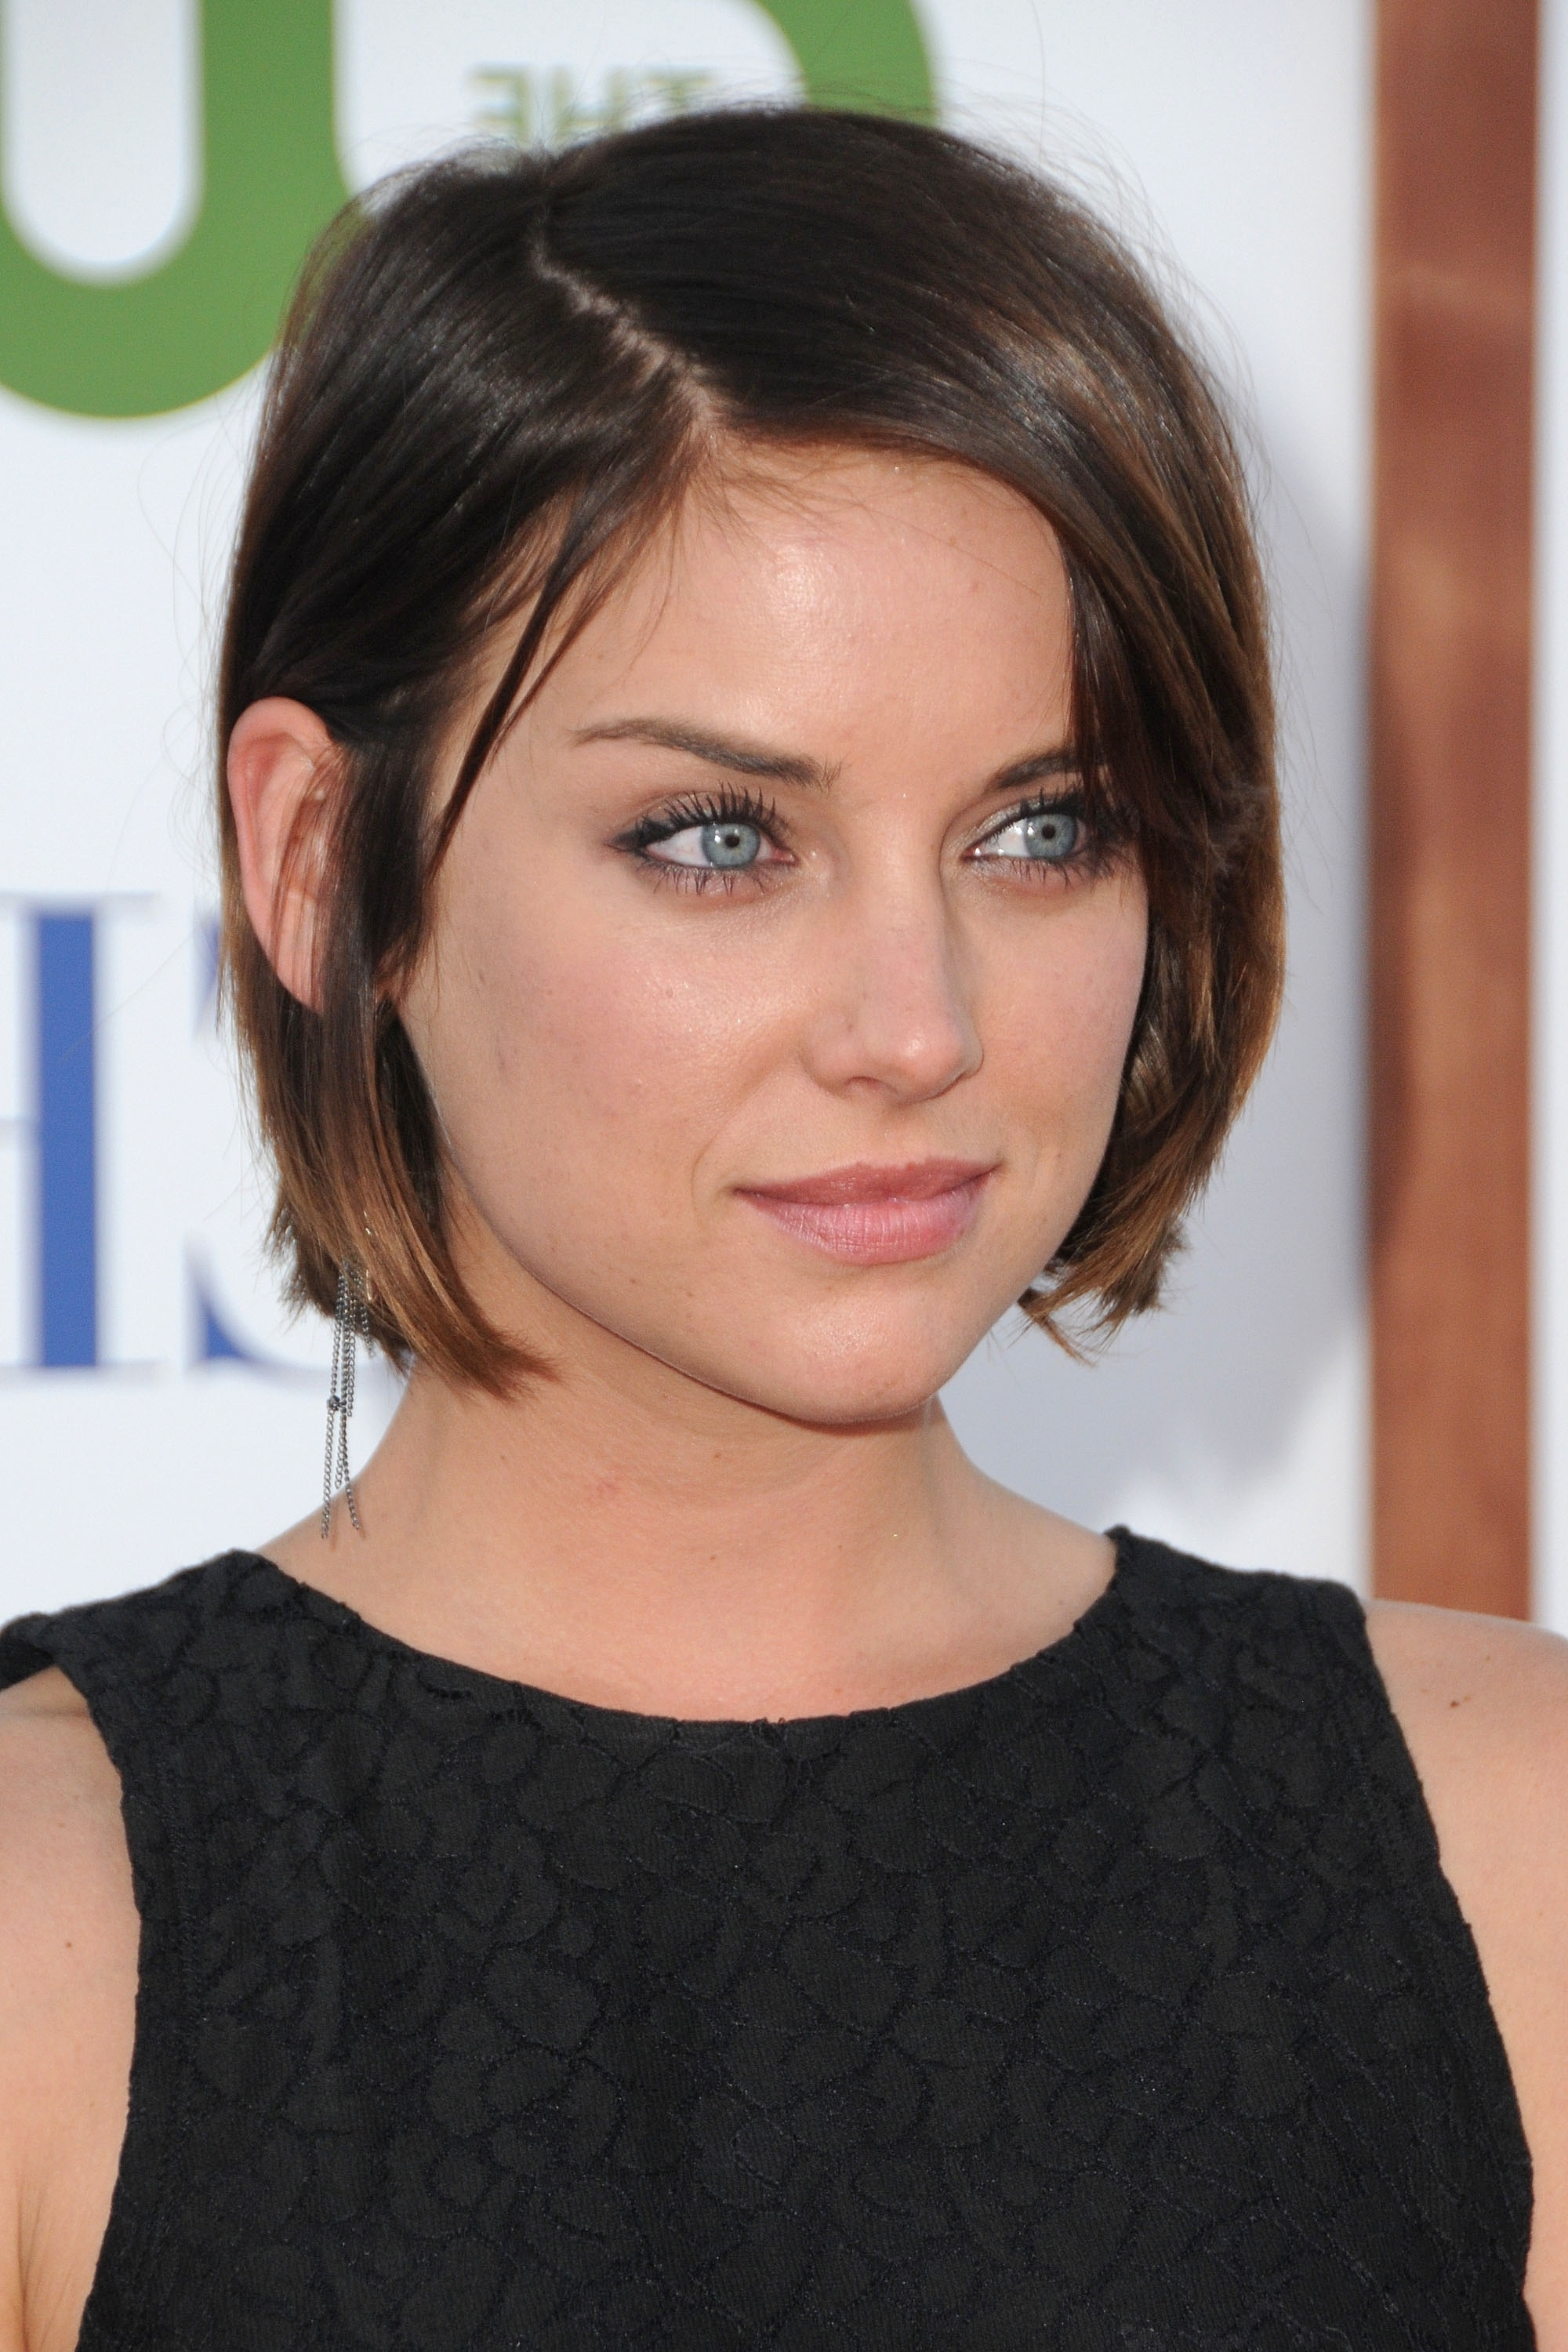 Jessica Stroup | Celebrïtïes & Famous People 2 | Pinterest pertaining to Recent Jessica Stroup Pixie Hairstyles